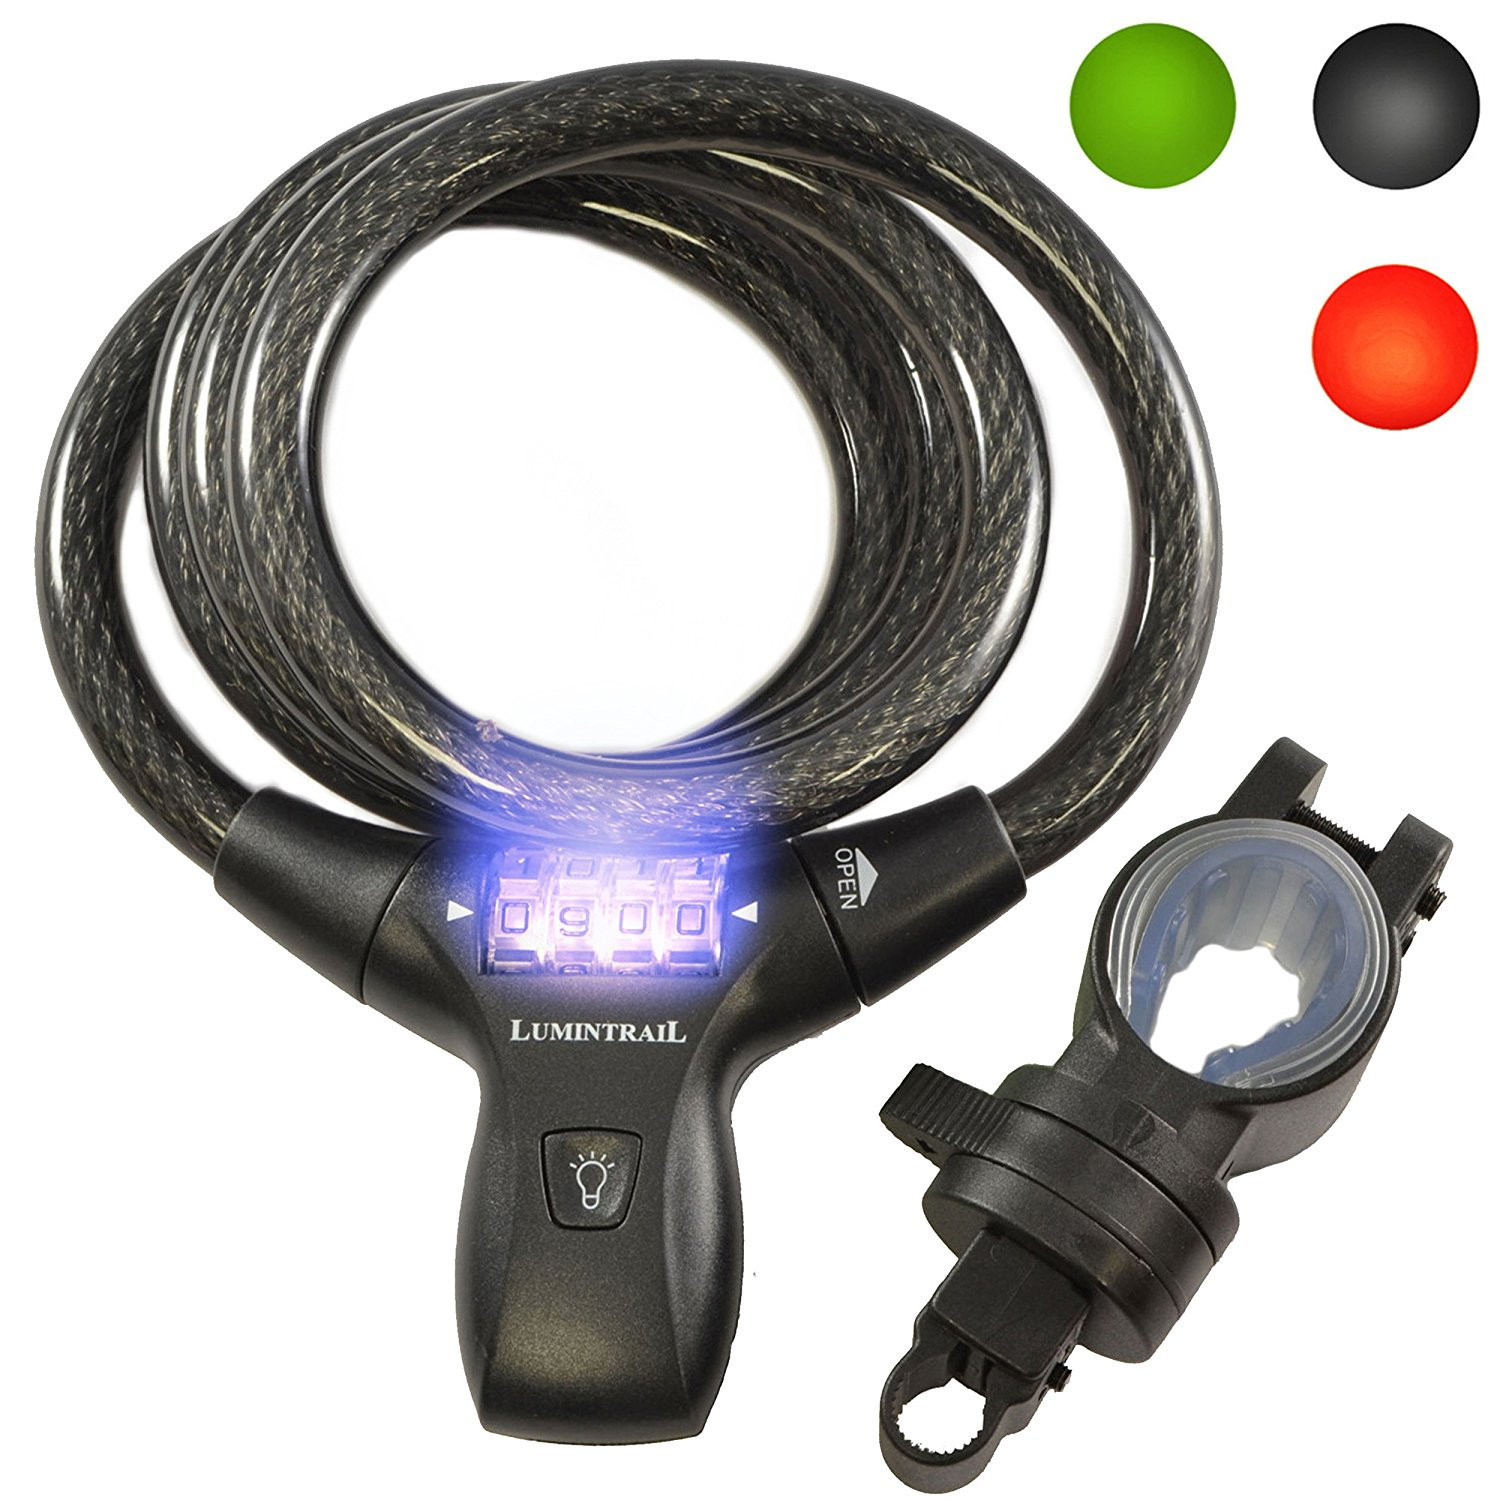 Lumintrail LK21051 Bike Bicycle Combination Cable Lock with LED Illumination & Mounting Bracket, Military Grade Braided Steel & Components, Pick & Drill Resistant Security. Comes with Our